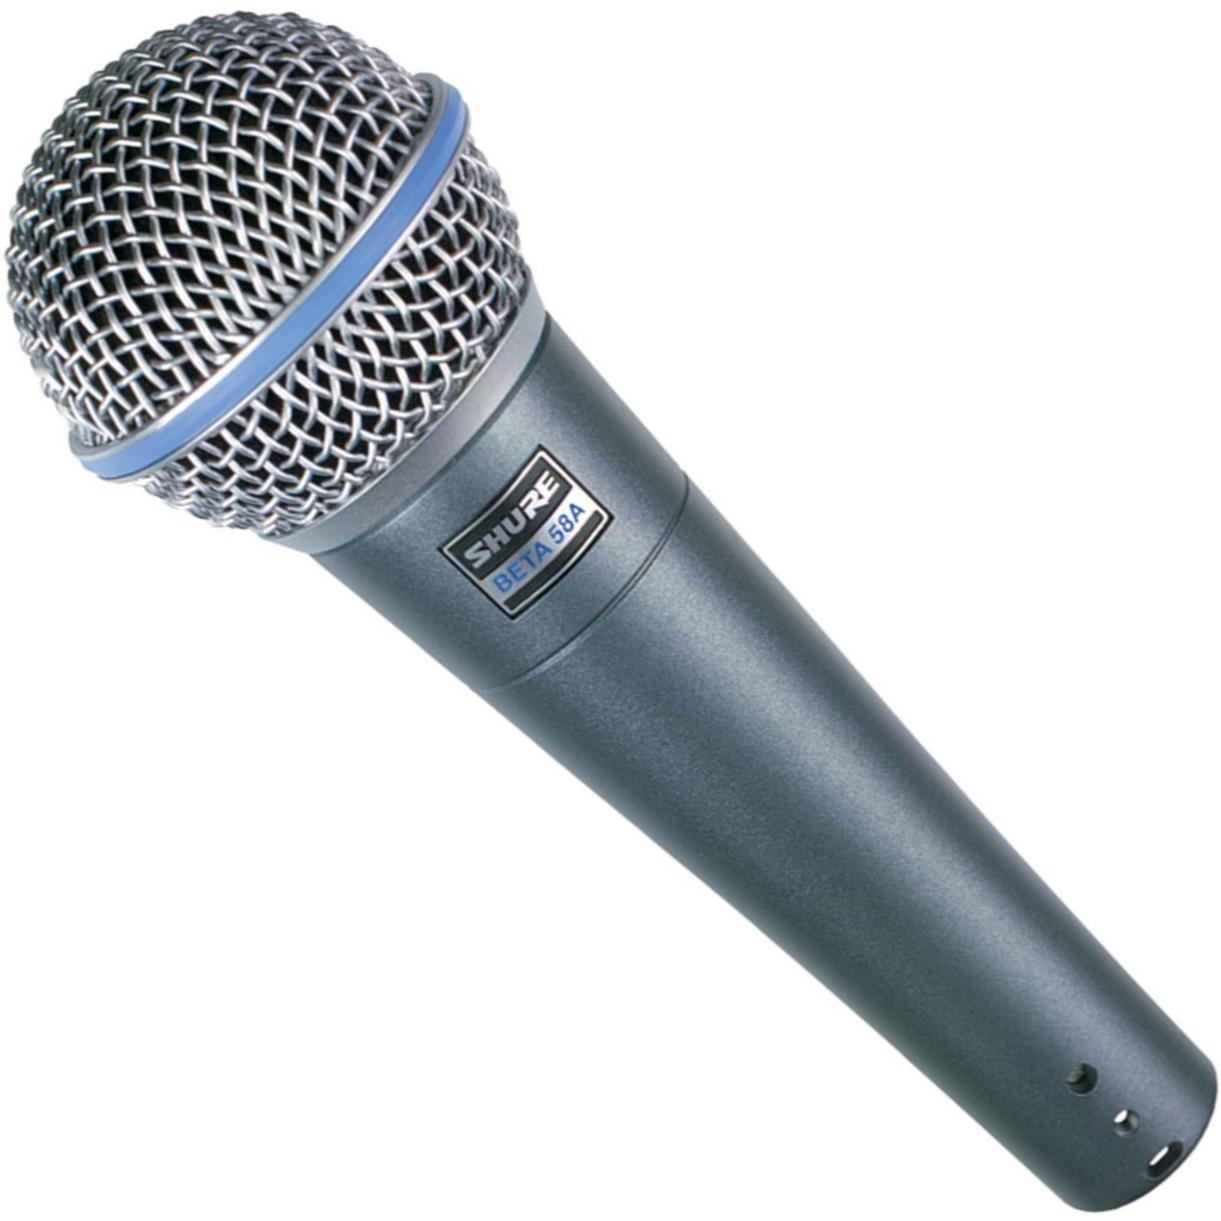 The Best Live Vocal Mics 40 To 1000 Nov 2018 Gearank Microphone Amplifier With Noise Suppression Shure Beta 58a